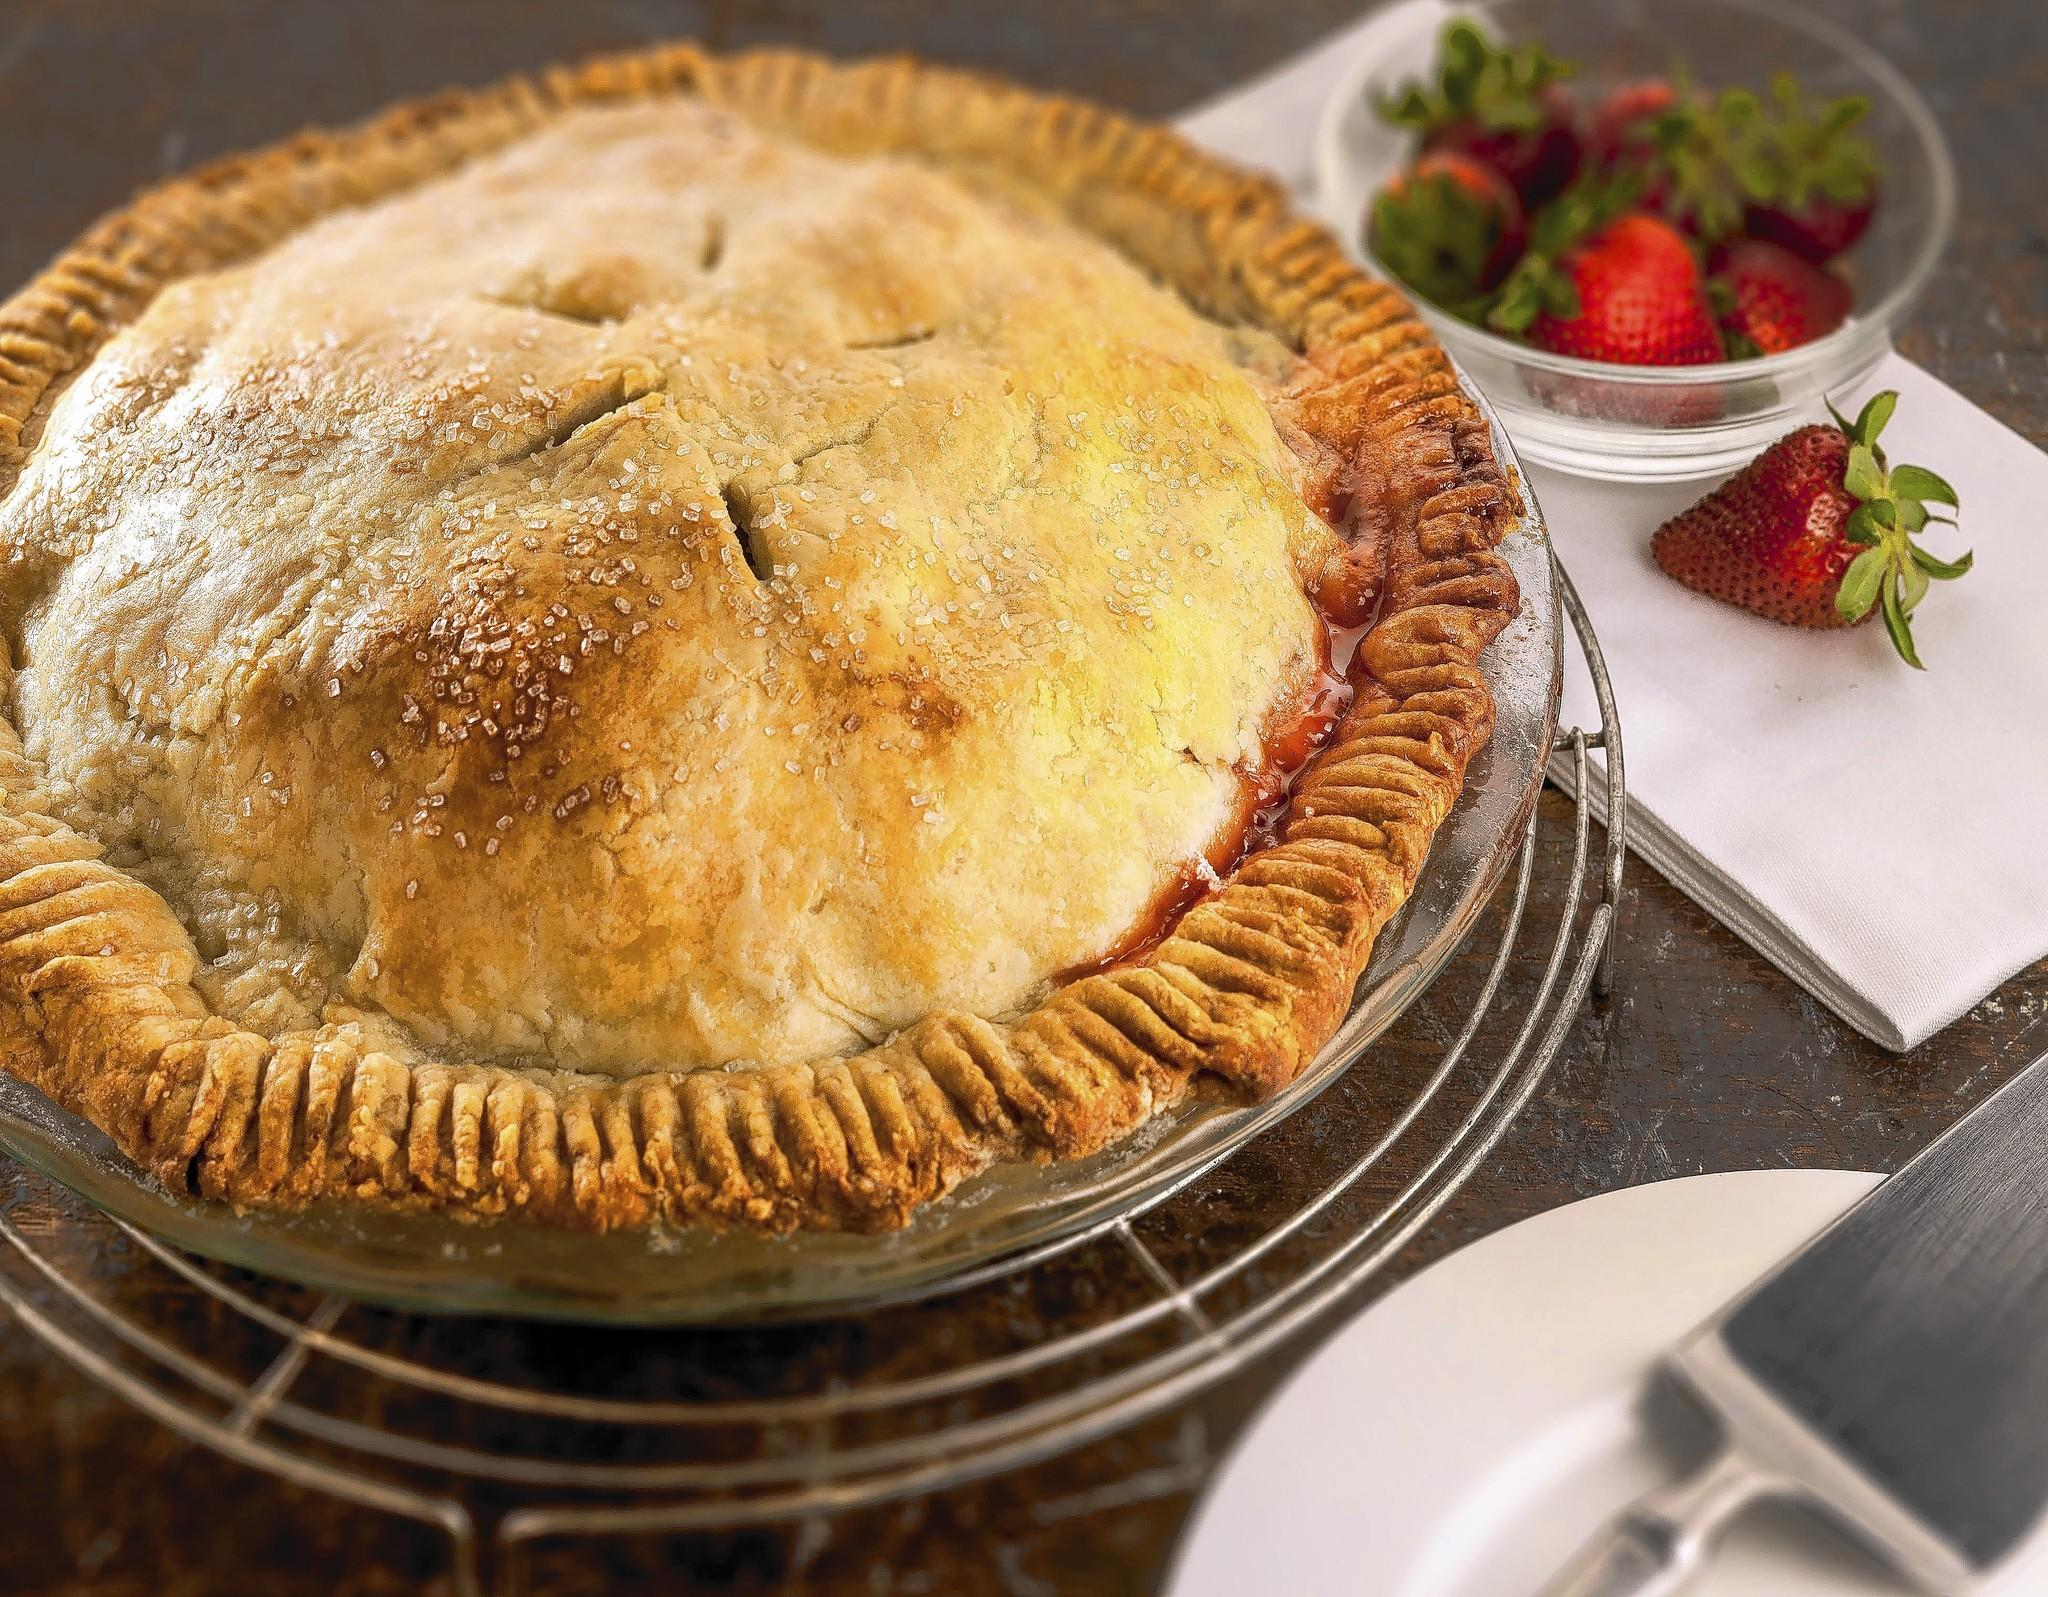 A finished dish photo of strawberry and rhubarb pie recipe.